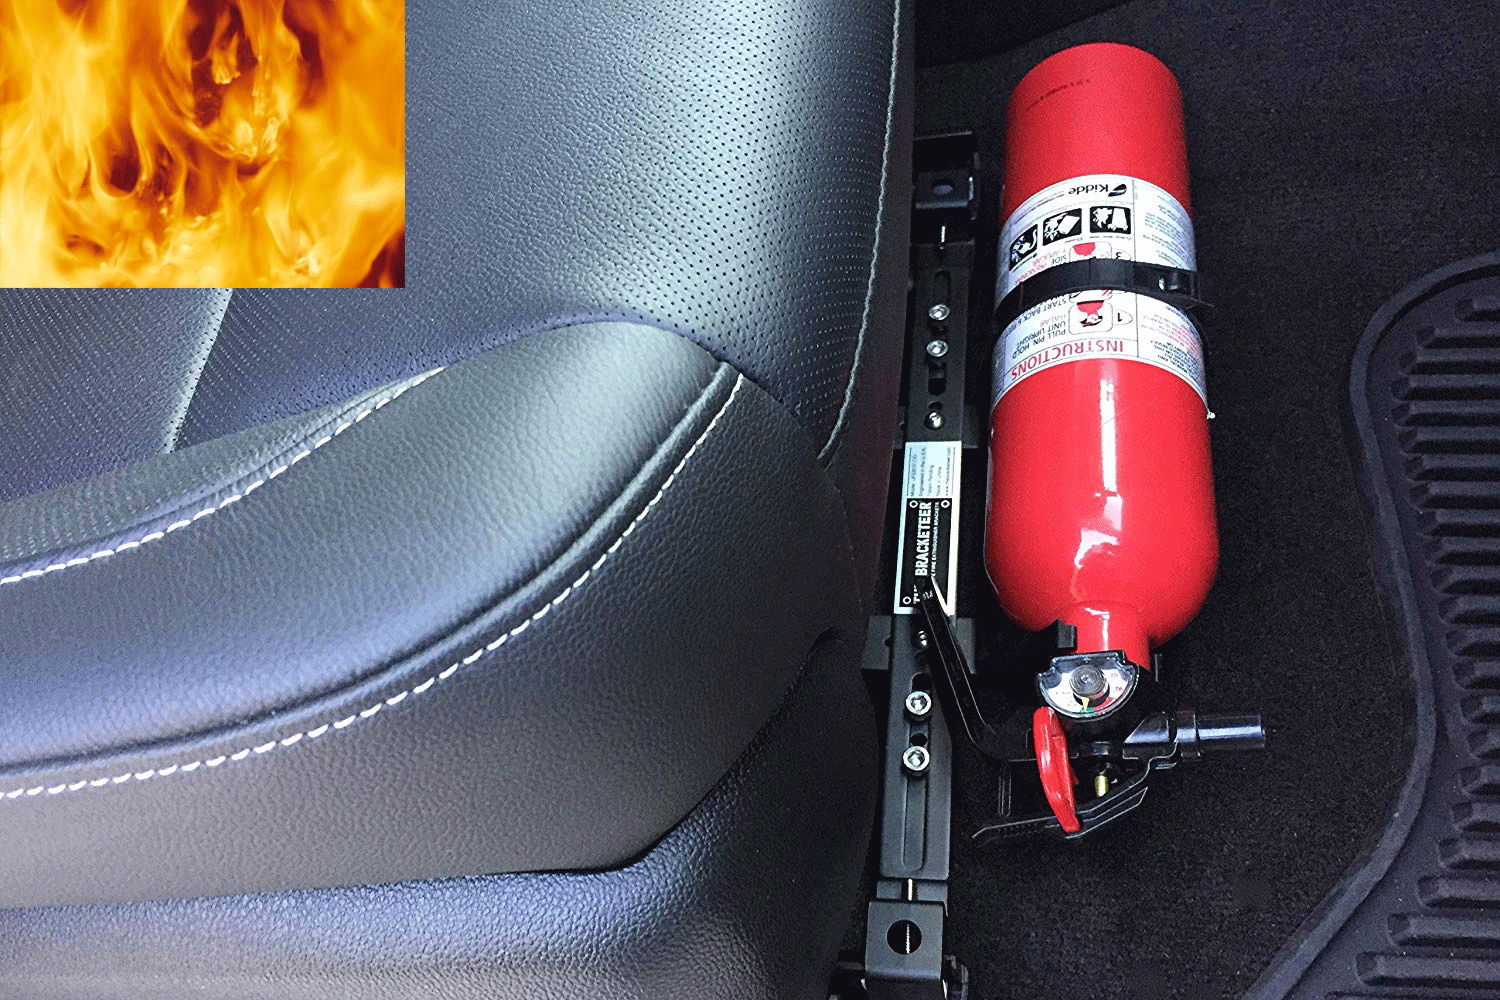 'Box driver' catches fire when traveling in the sun like a fire: Warning for explosive items 3